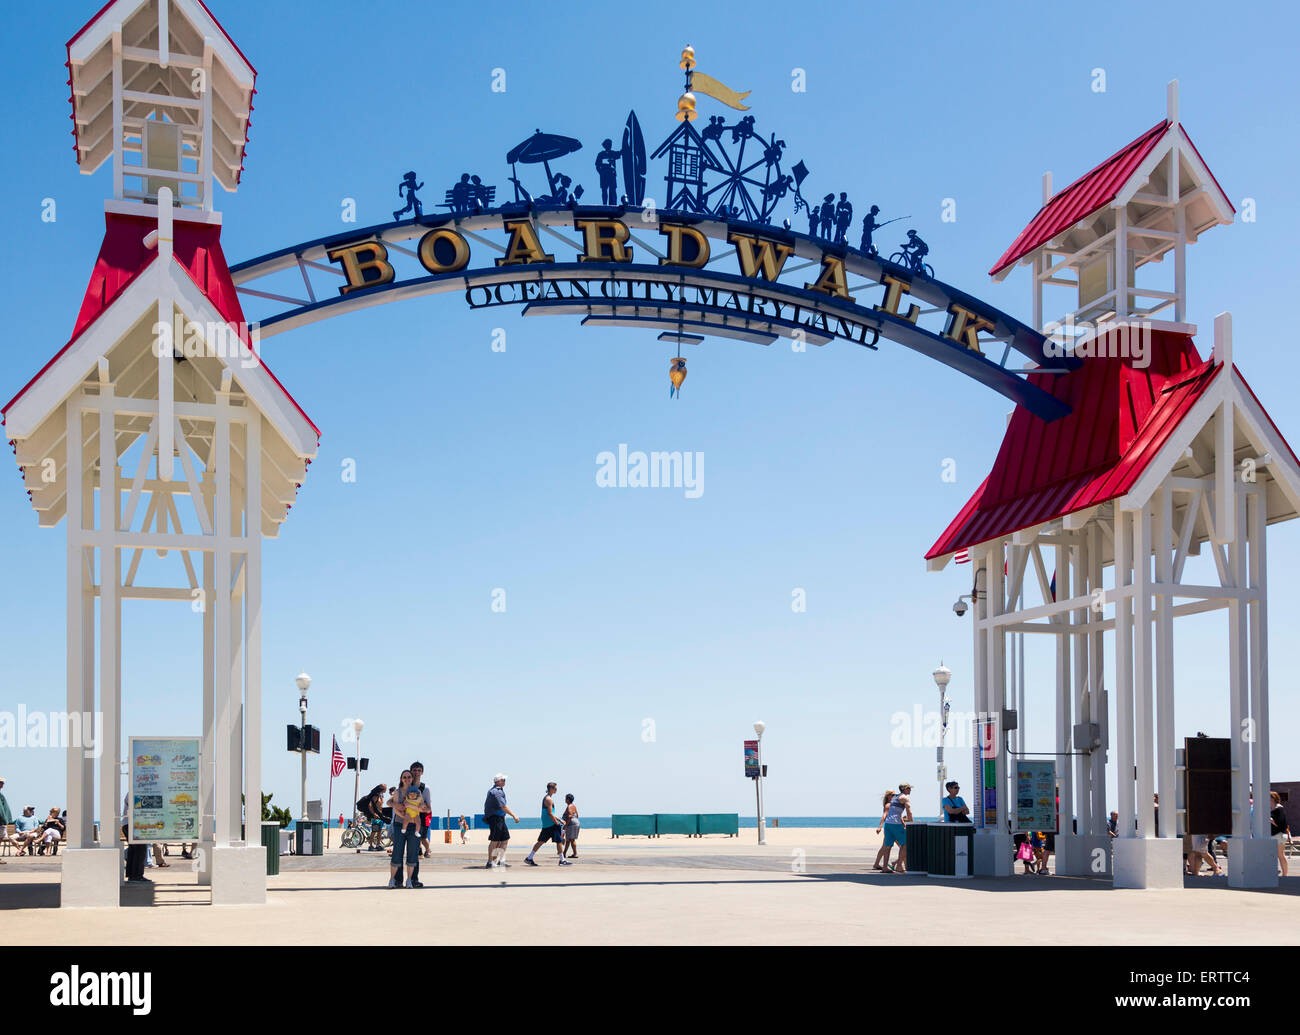 Famous sign above the boardwalk on the beach at Ocean City, Maryland, East Coast USA in summer - Stock Image